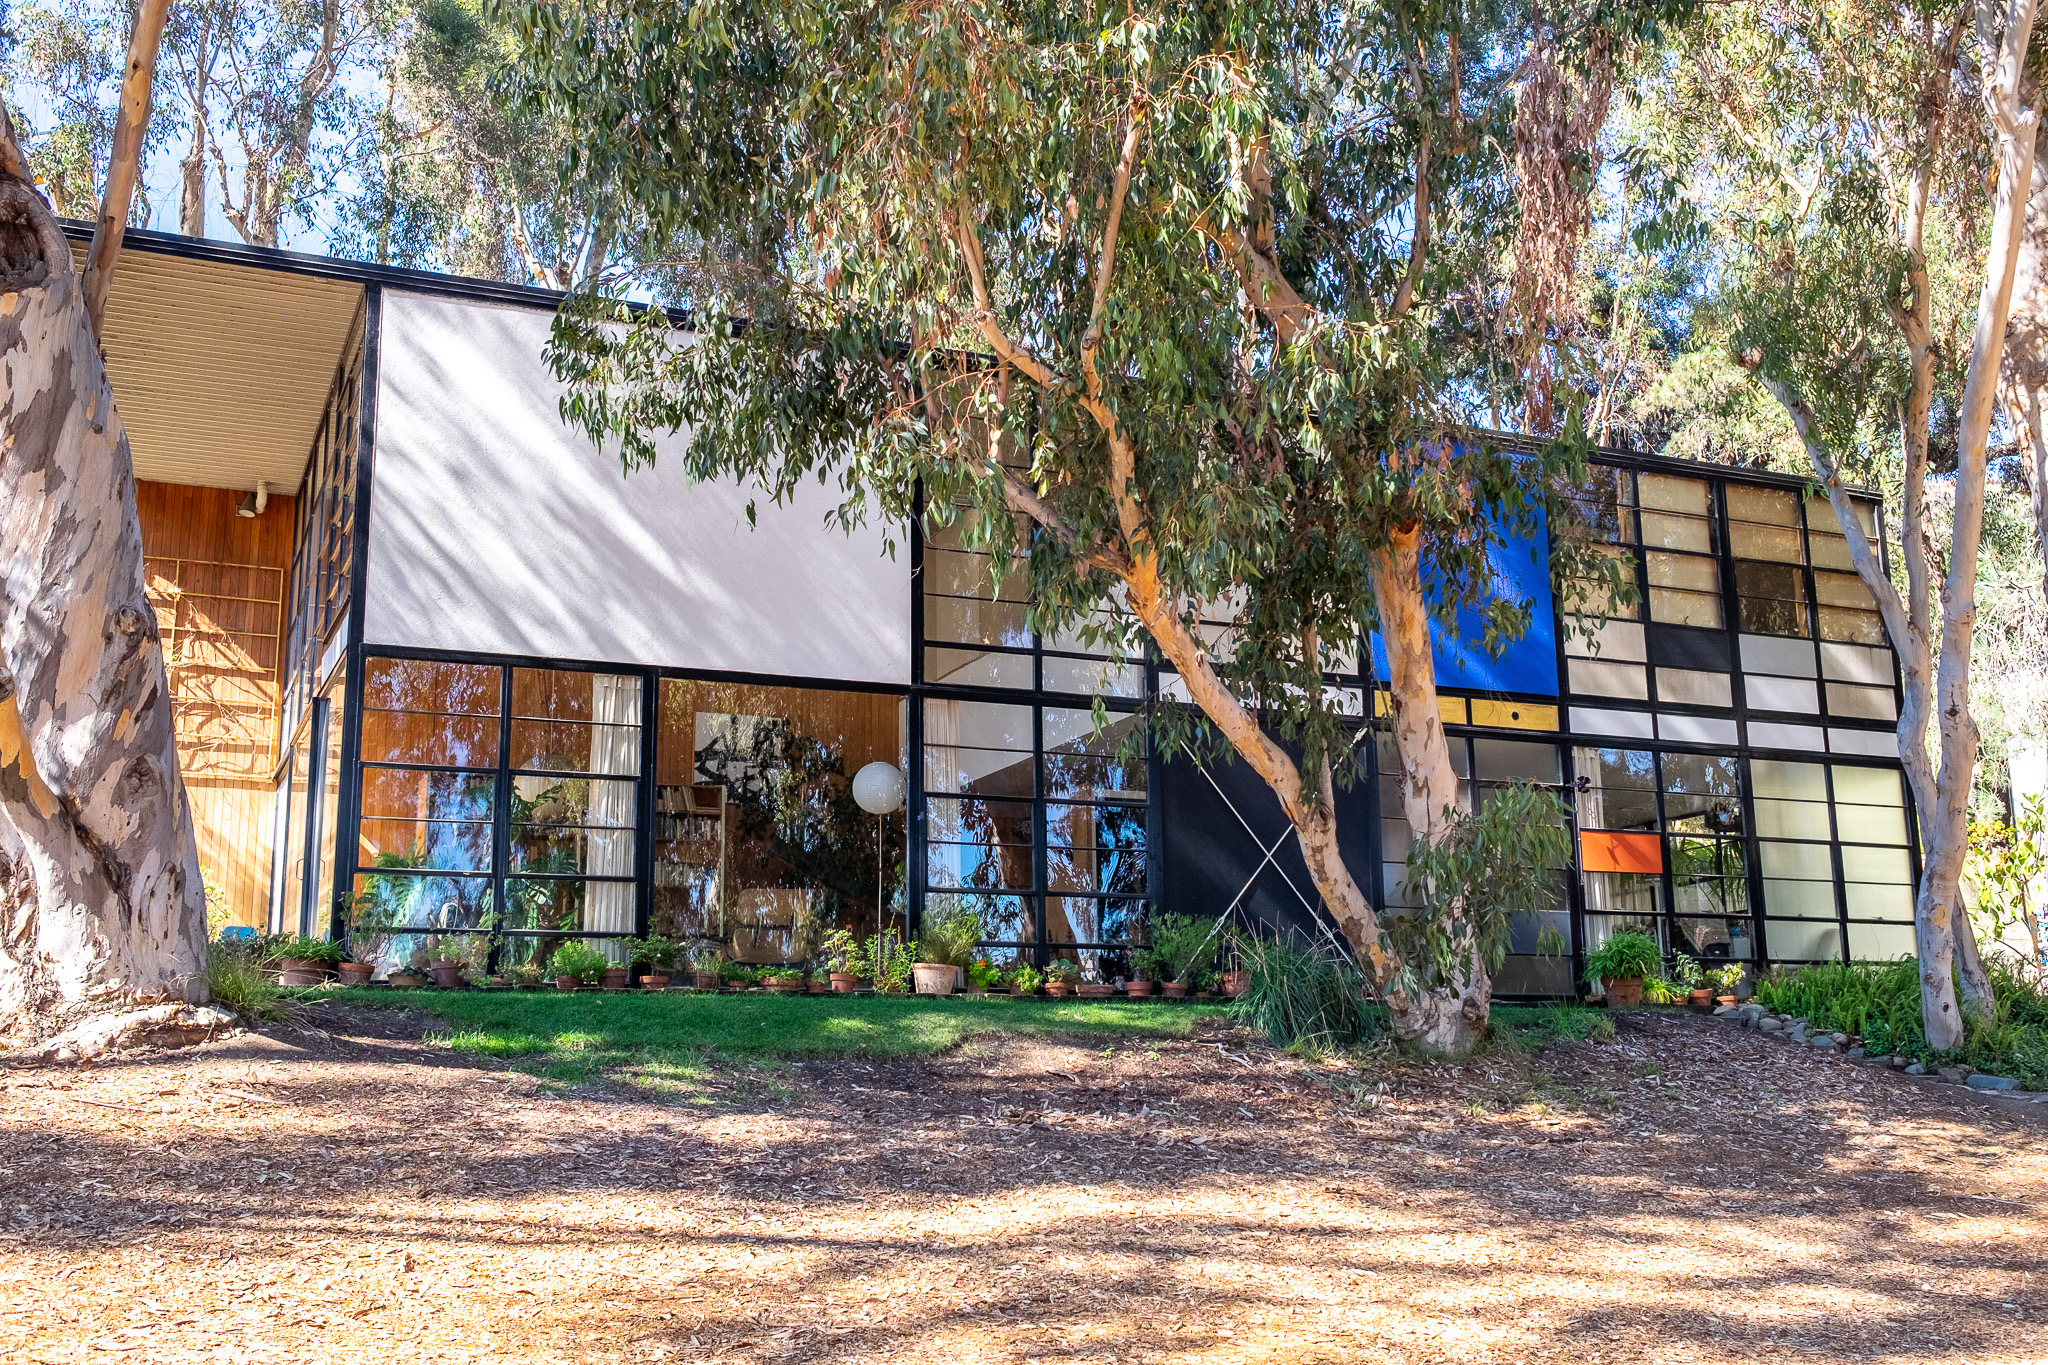 The Eames House | Photo Credit: Matthew Tait